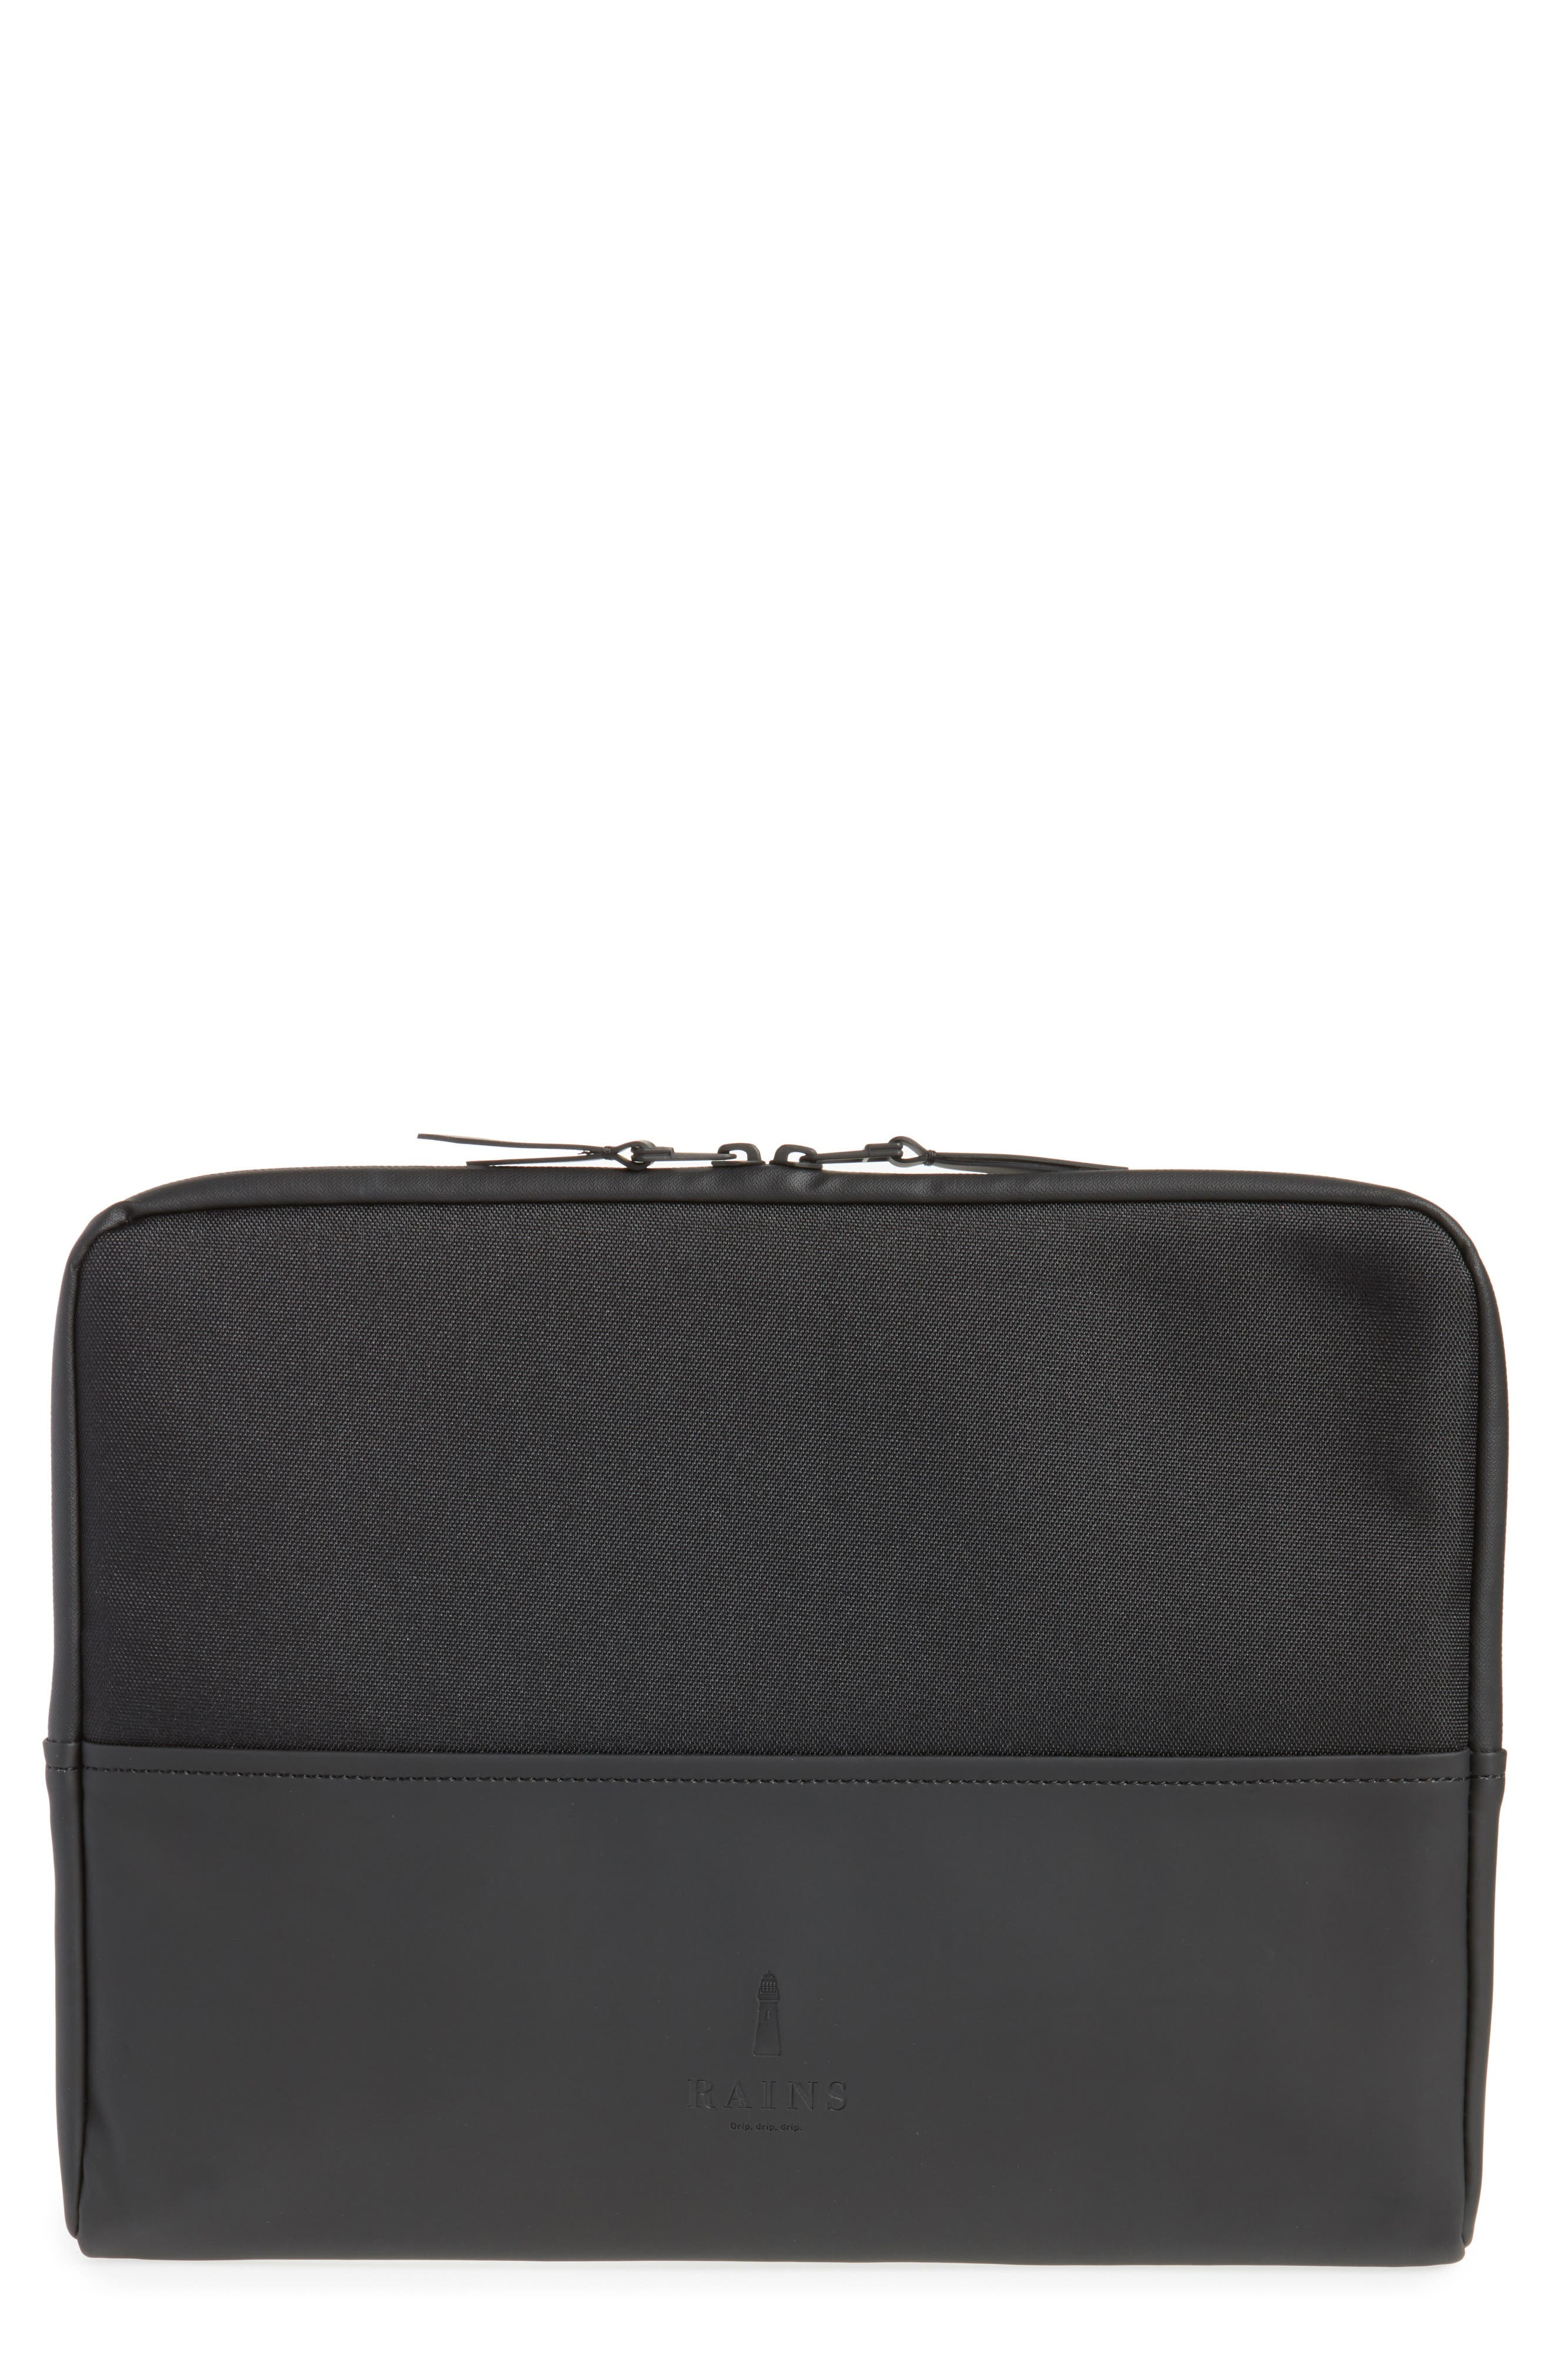 RAINS 13-Inch Laptop Sleeve, Main, color, BLACK